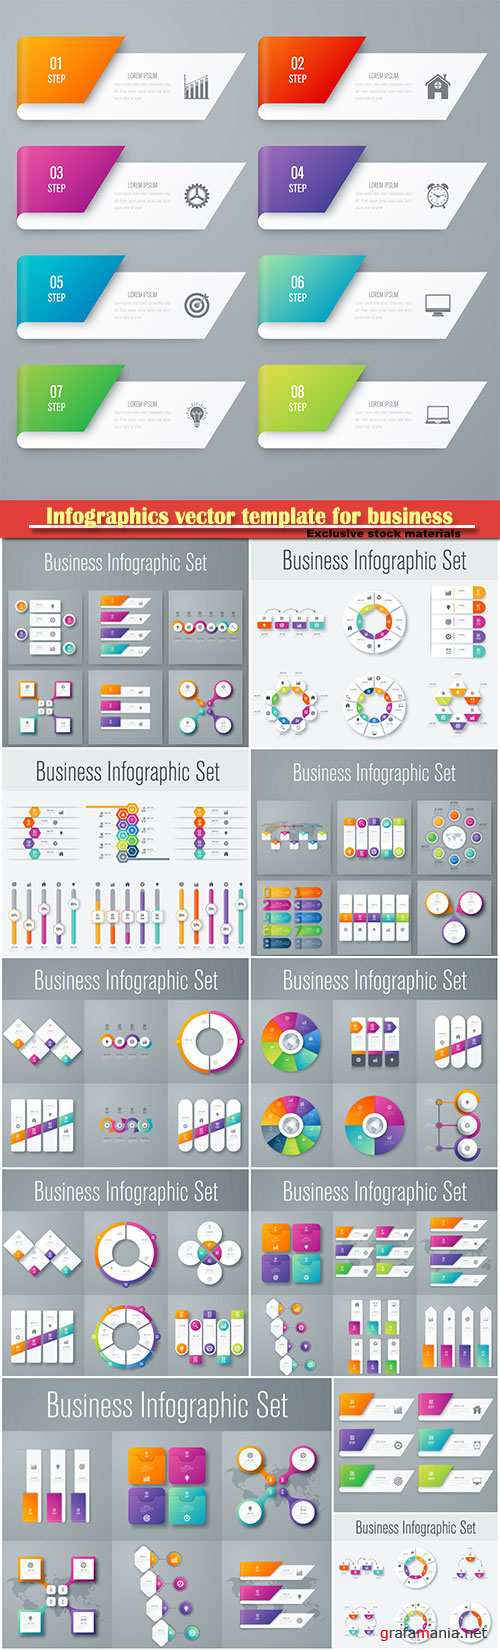 Infographics vector template for business presentations or information banner # 64